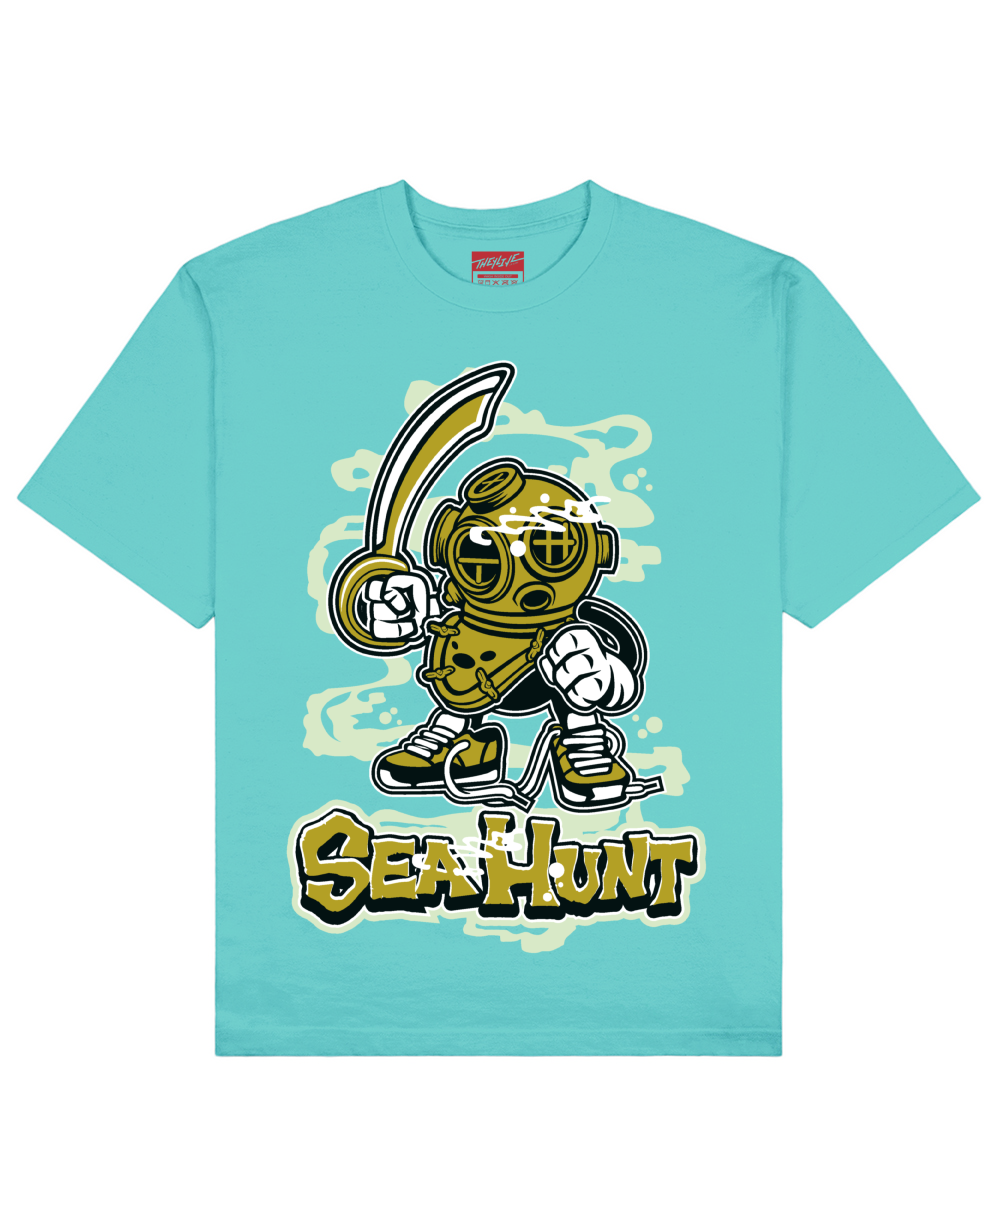 Sea Hunt Print T-Shirt in Aqua Green - T-Shirts - THEYLIVE - BRANMA